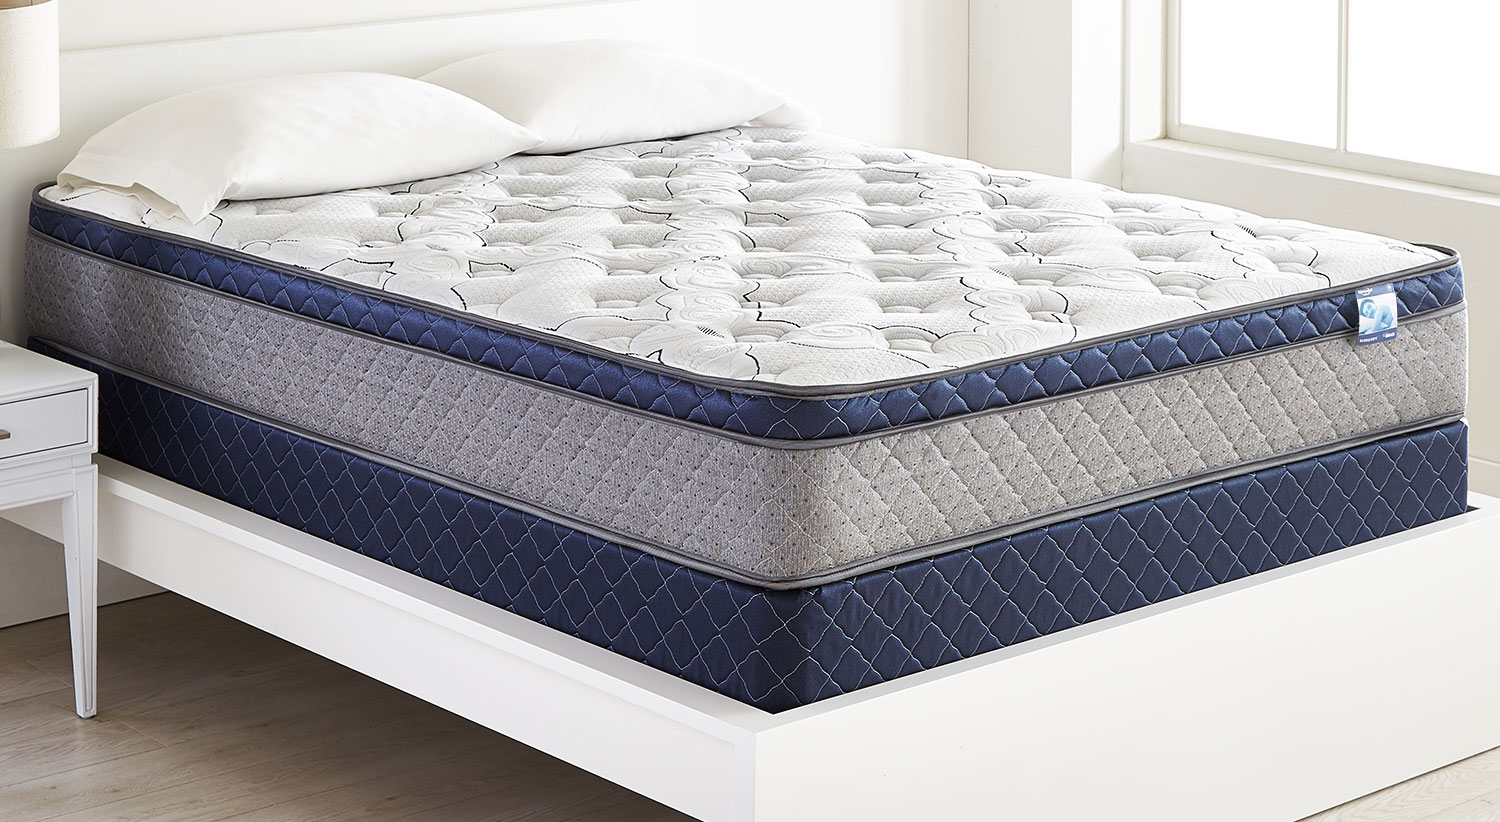 Mattresses and Bedding - Springwall Burberry Euro-Top Firm Queen Mattress Set